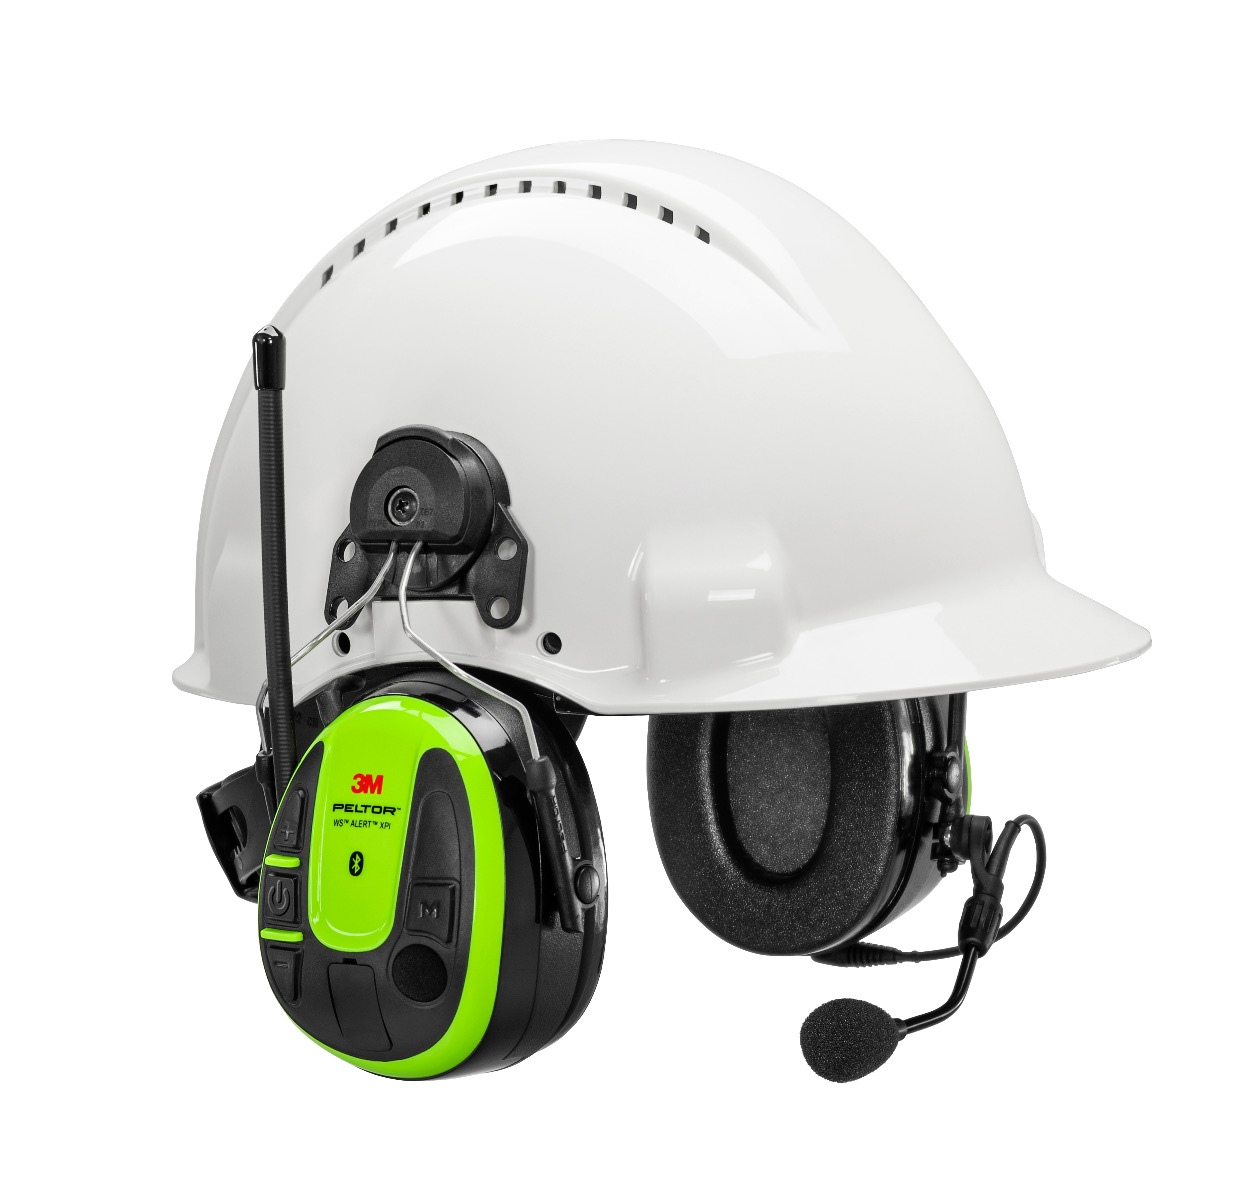 3M Peltor - Helmet Attachment - Hearing Protection